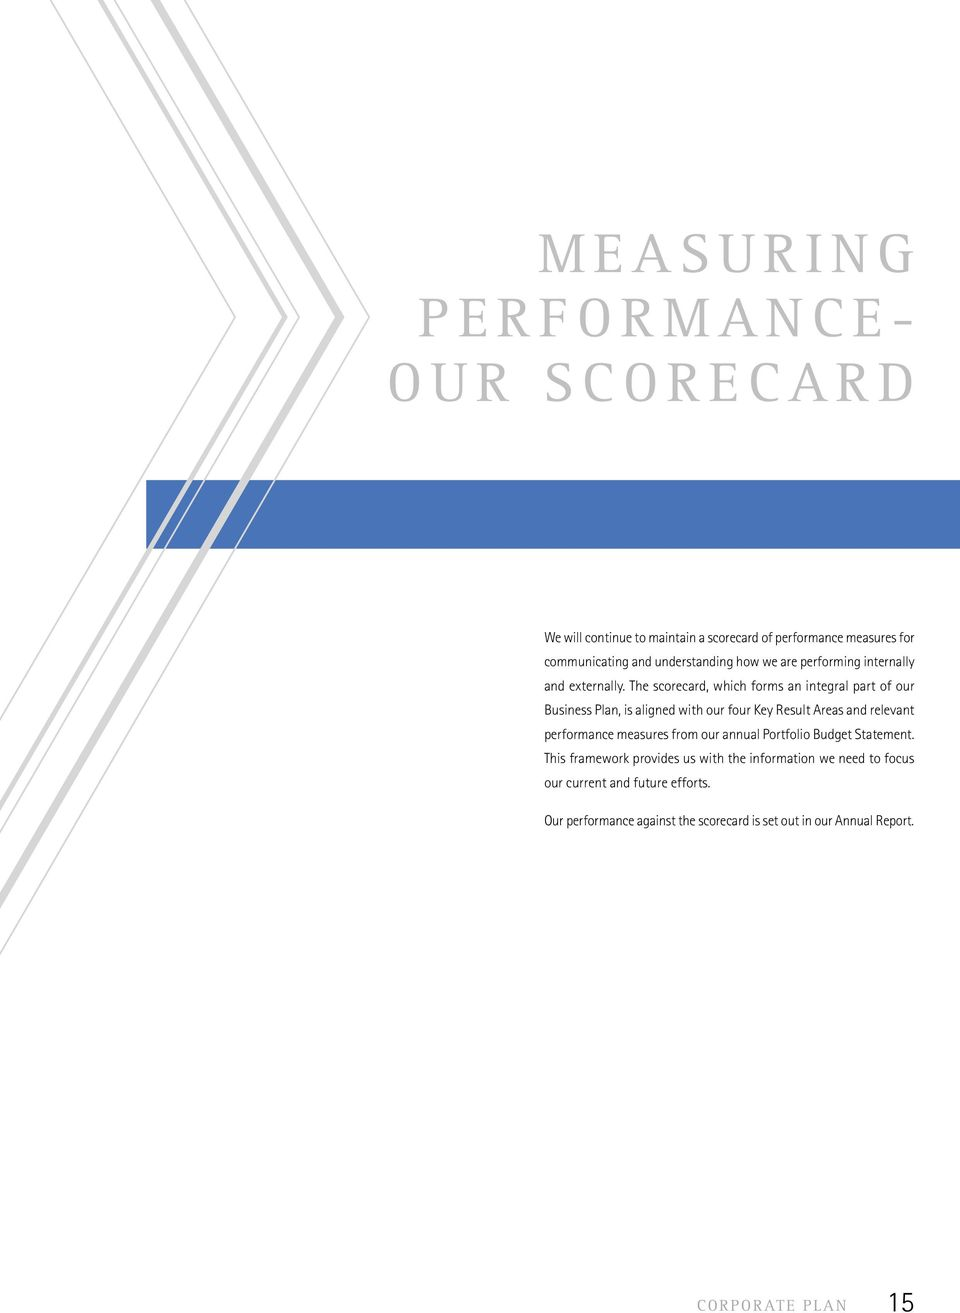 The scorecard, which forms an integral part of our Business Plan, is aligned with our four Key Result Areas and relevant performance measures from